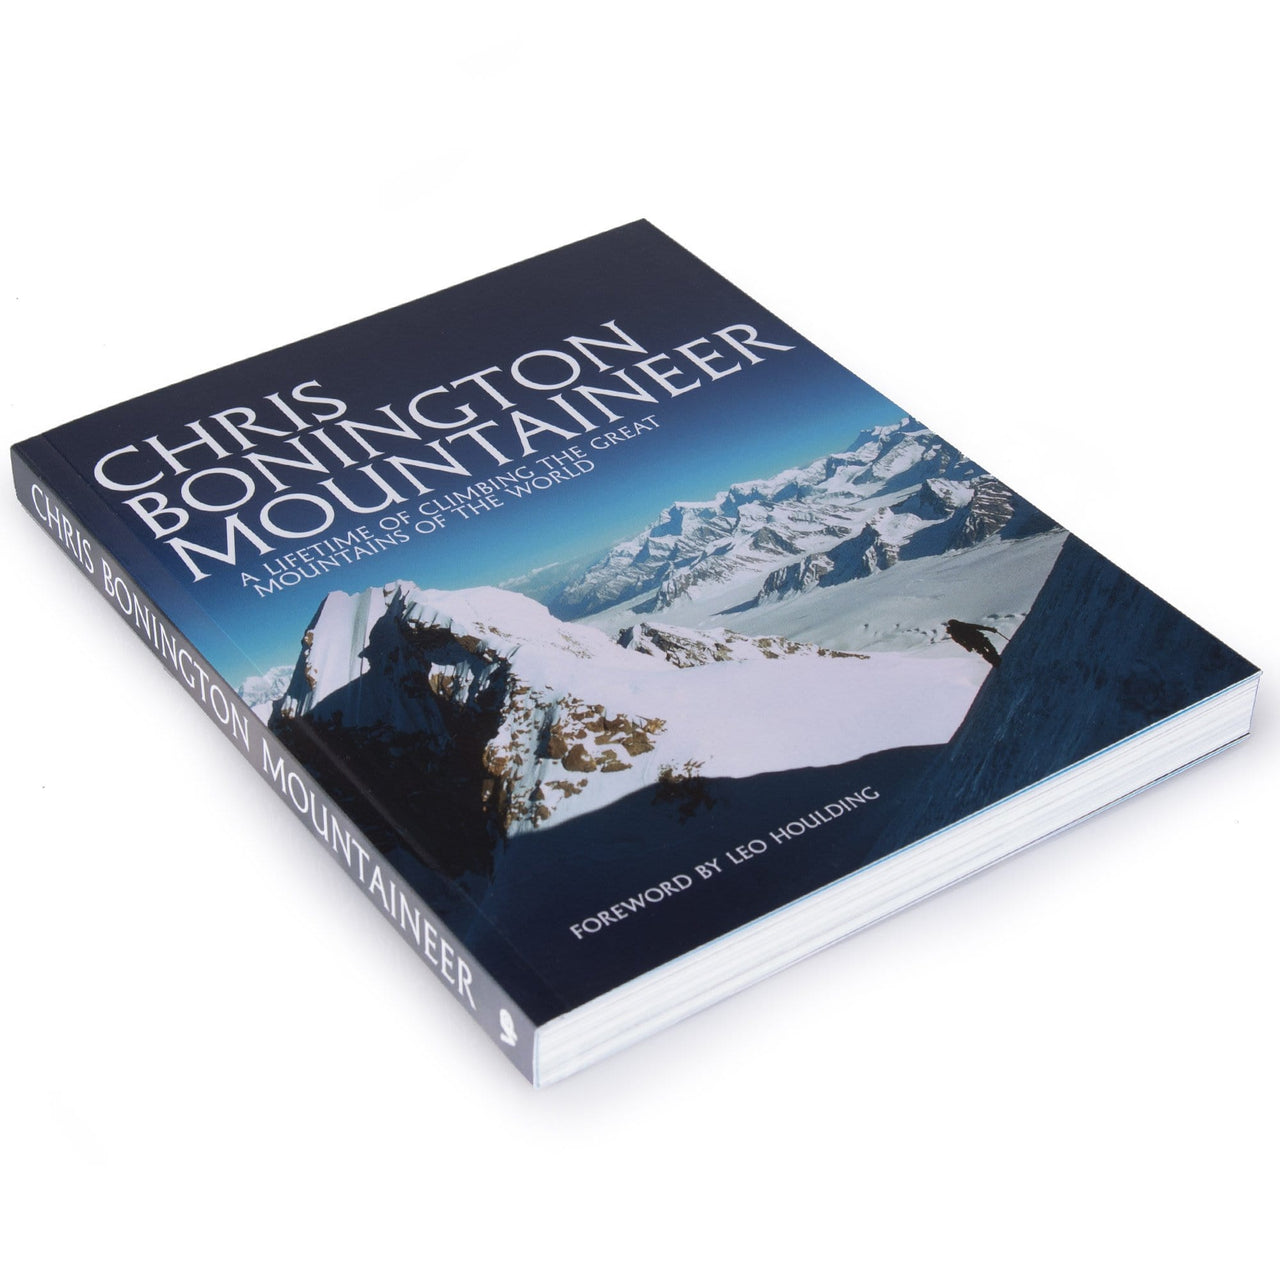 Chris Bonington Mountaineer